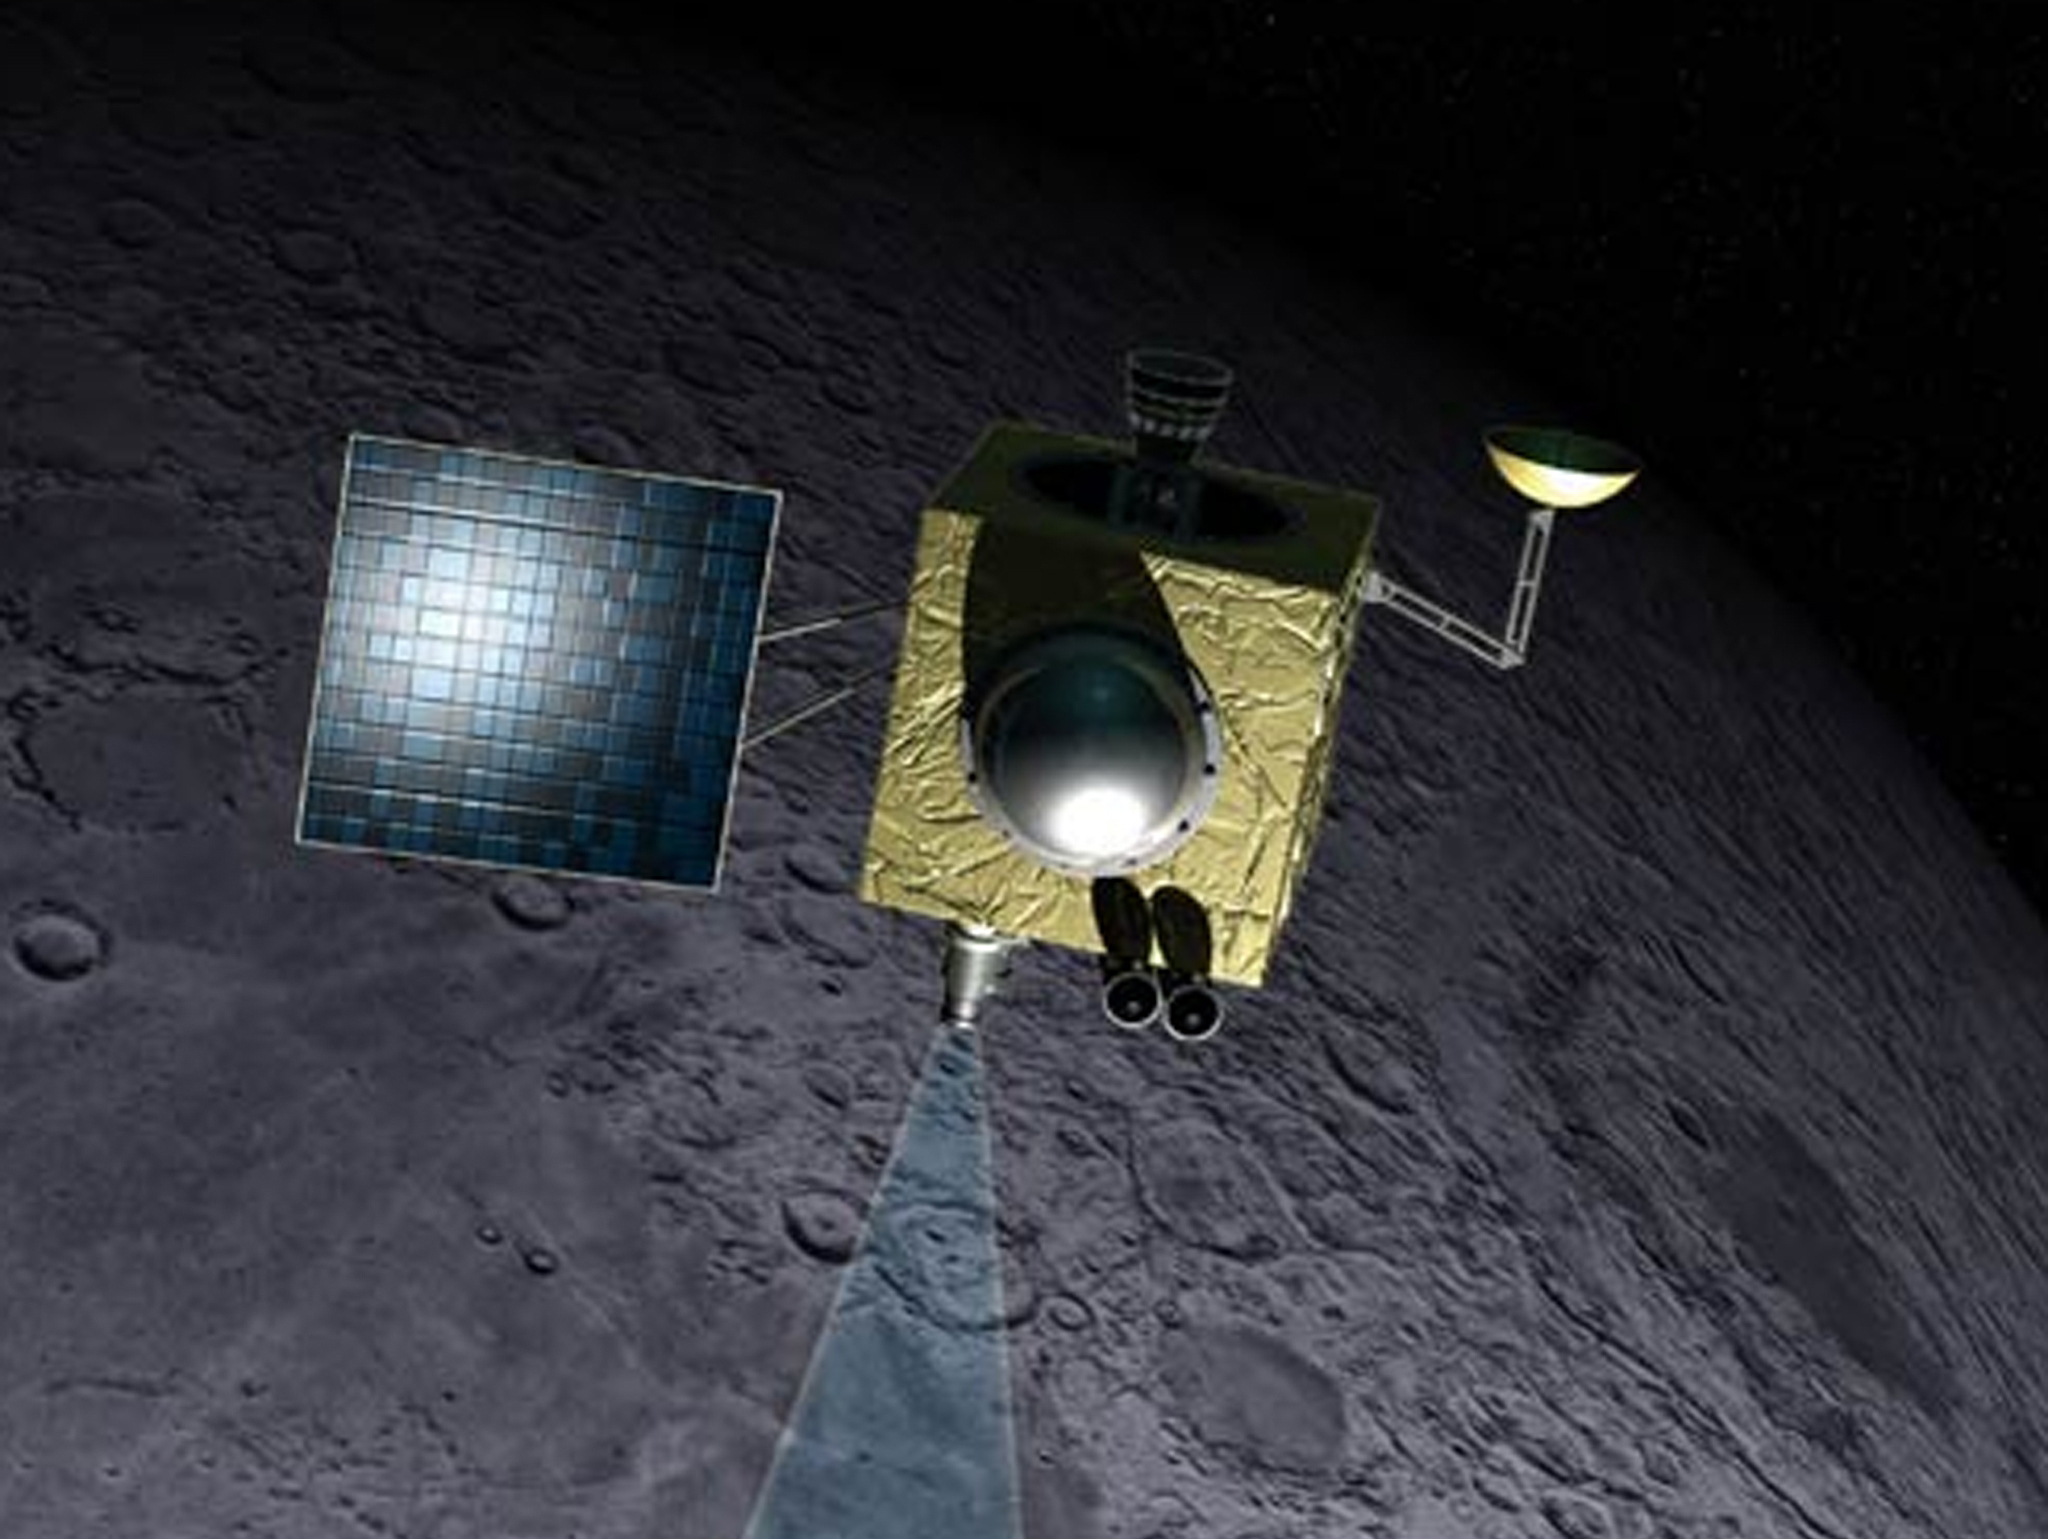 India Drops Russia from Chandrayaan-2 Lunar Mission